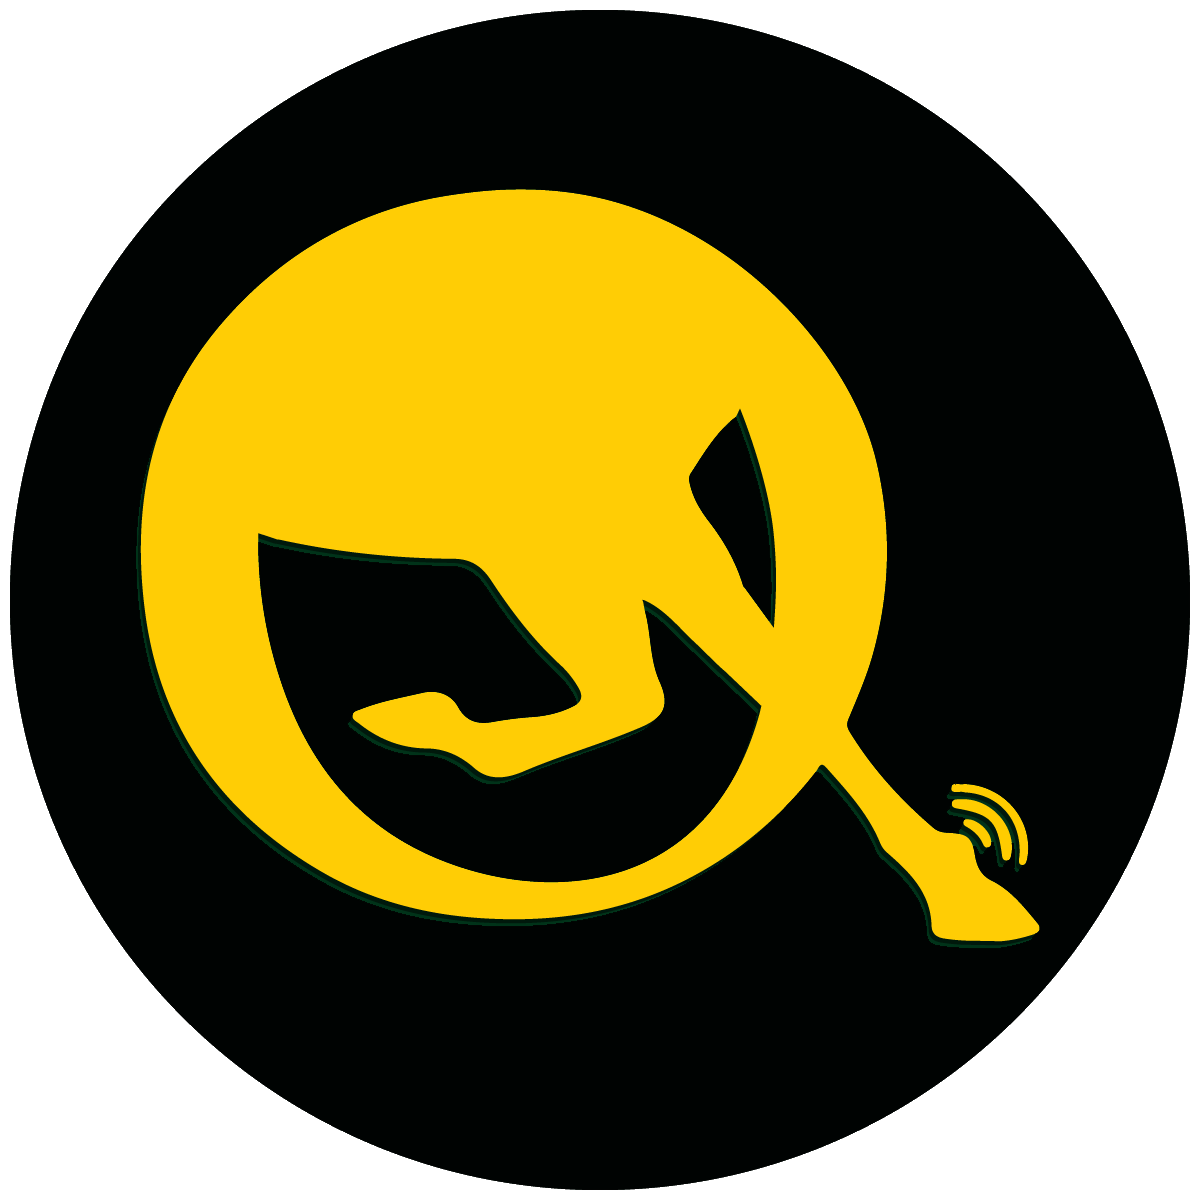 q logo for social media b.png